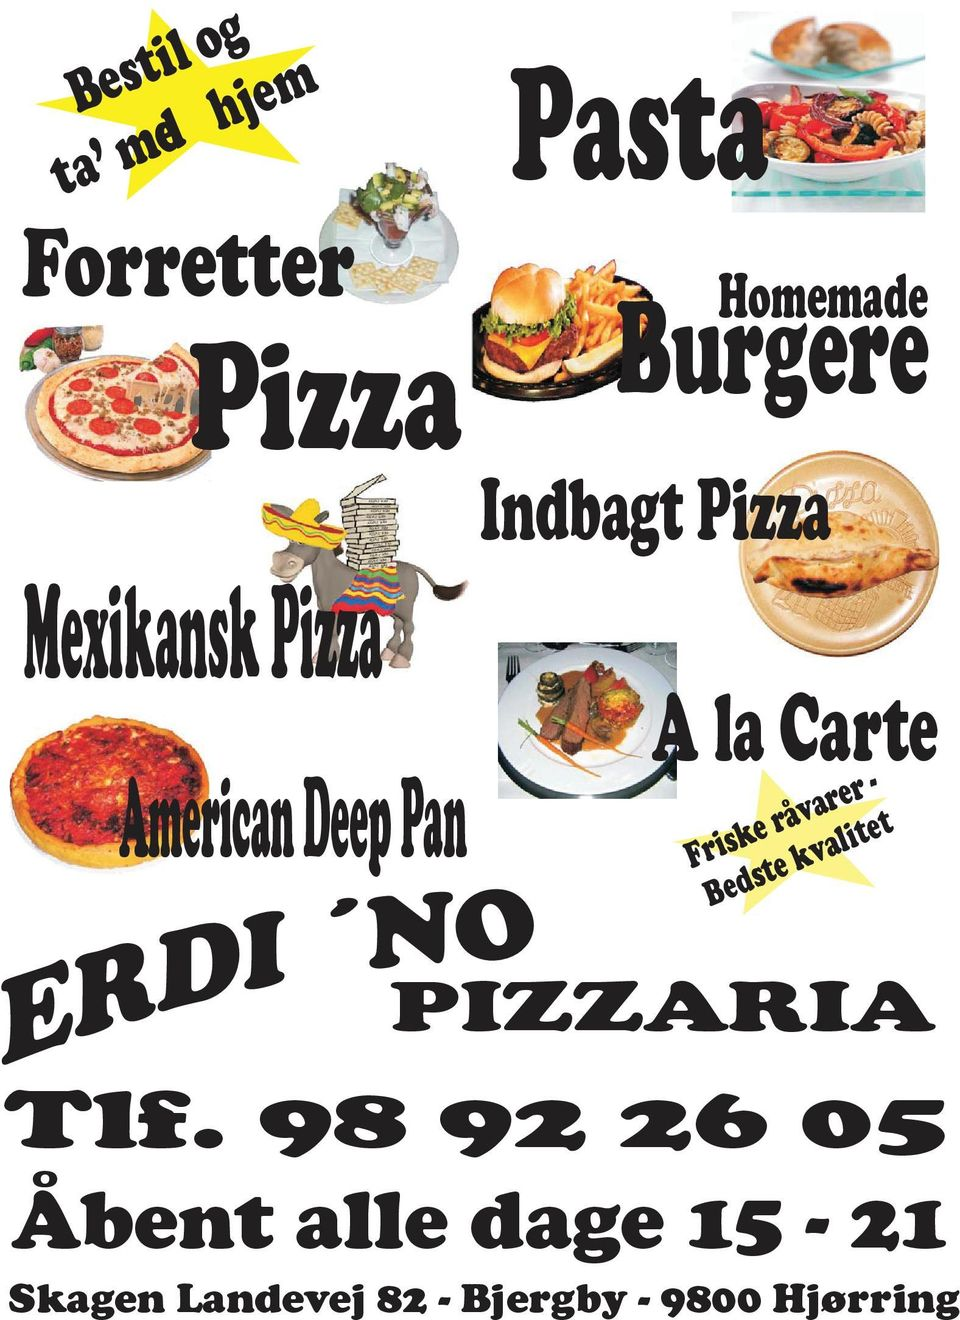 Pizza Mexikansk Pizza American Deep Pan MEXI S PIZZA Pasta Burgere Homemade Indbagt Pizza A la Carte Friske